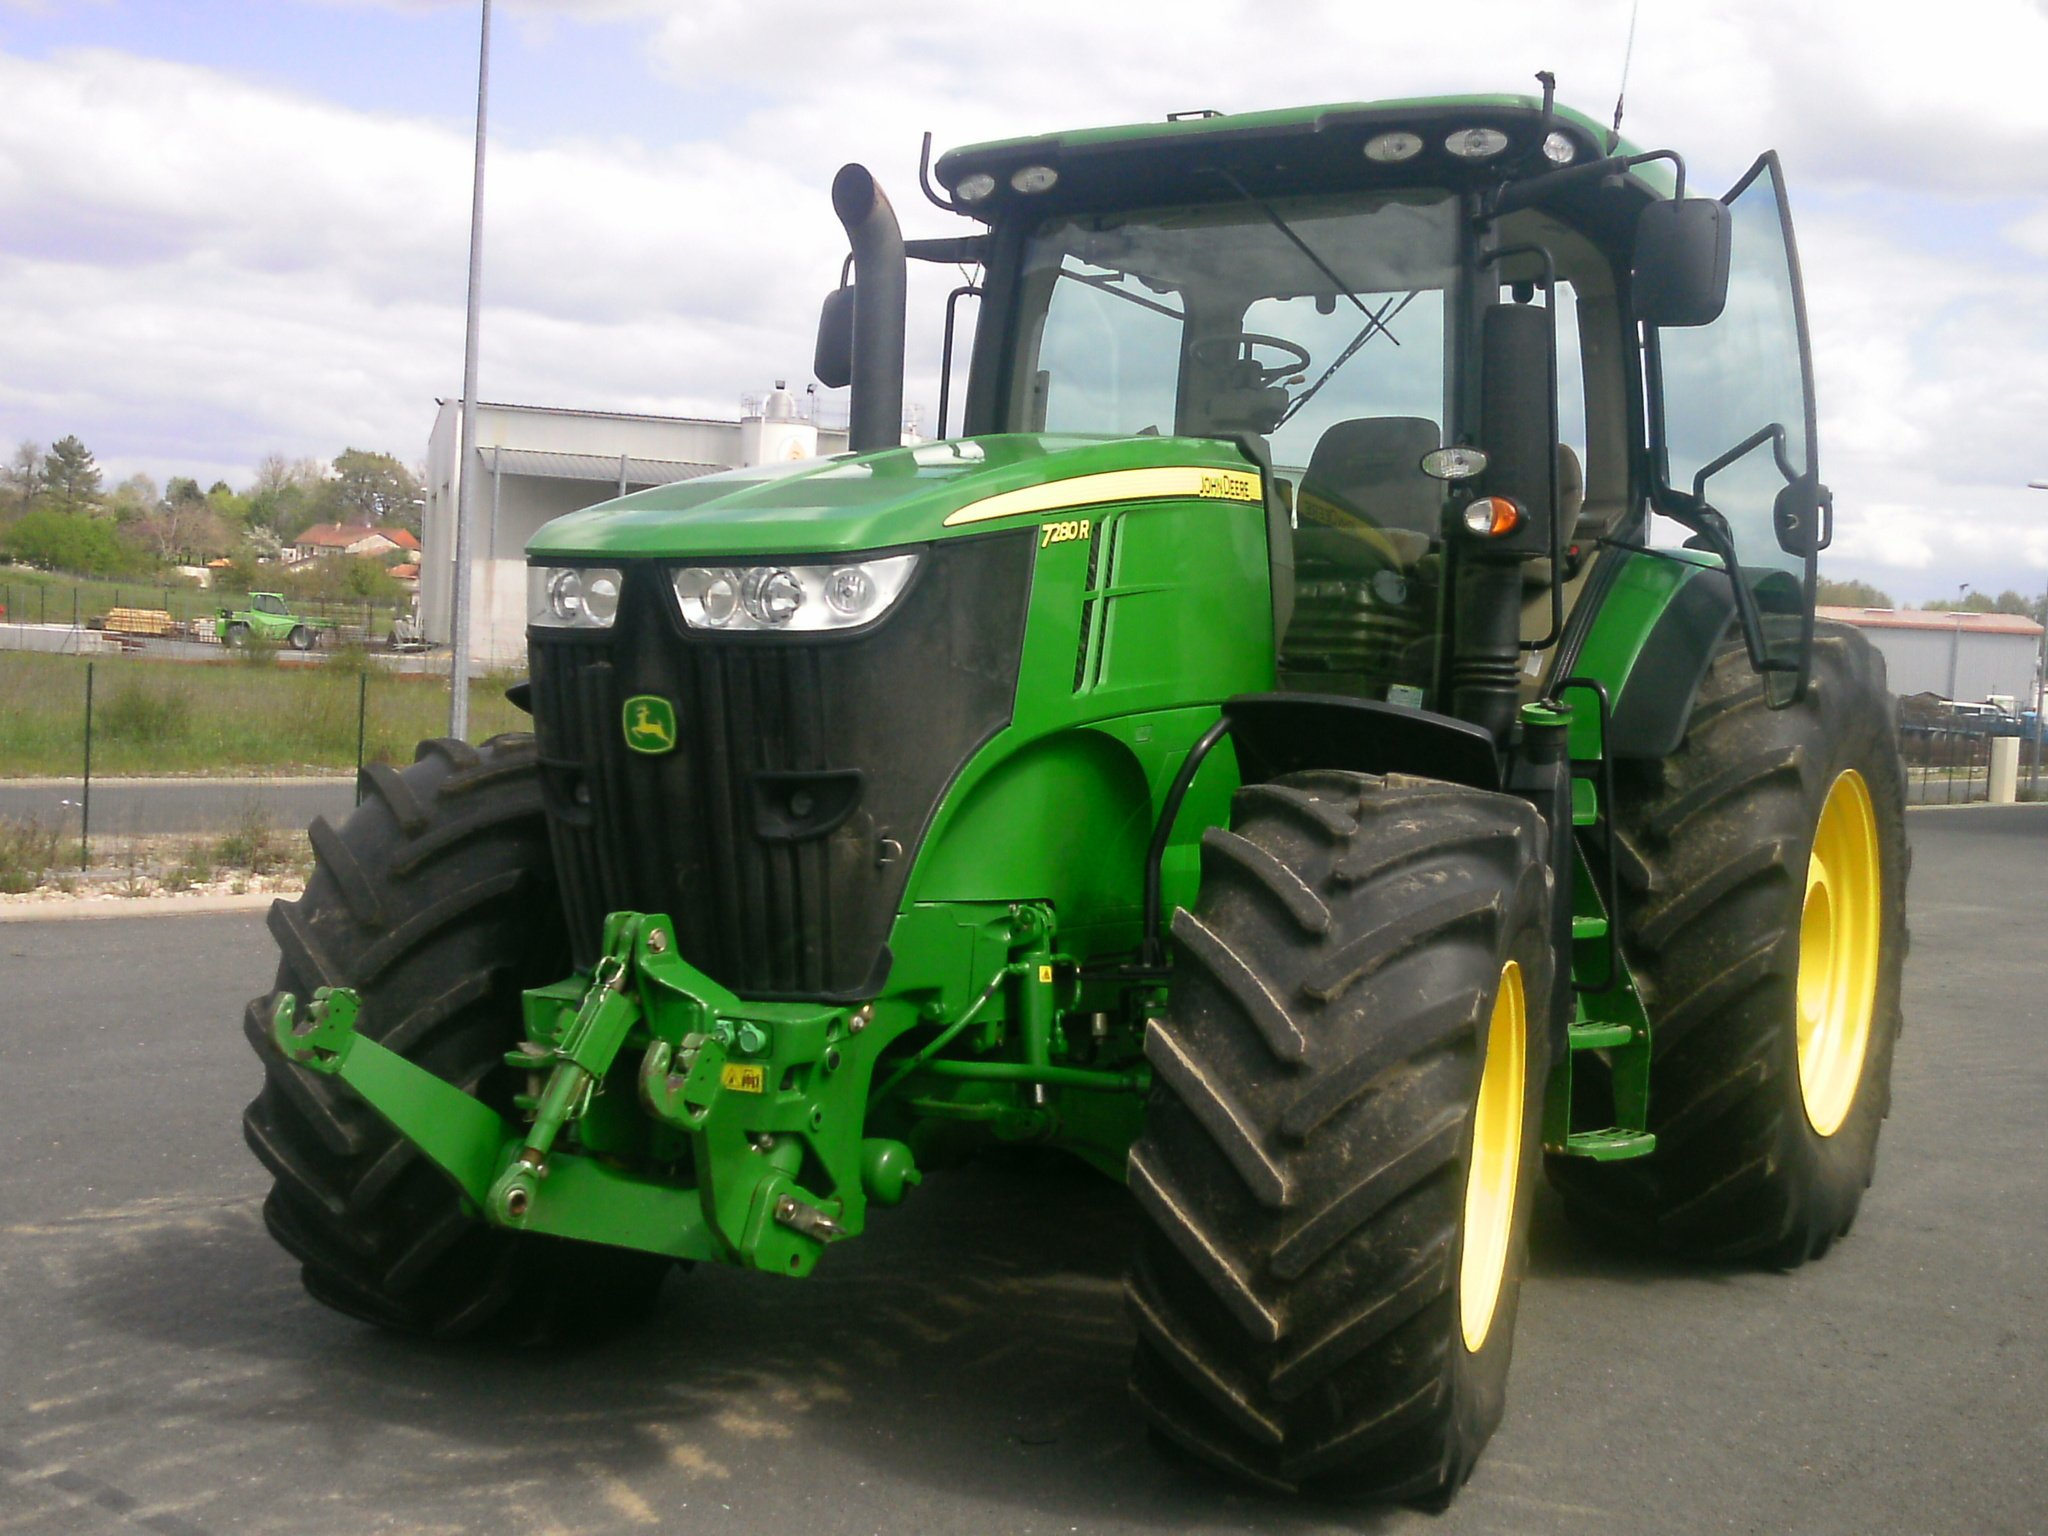 tracteur agricole john deere 7280r vendre sur guenon. Black Bedroom Furniture Sets. Home Design Ideas